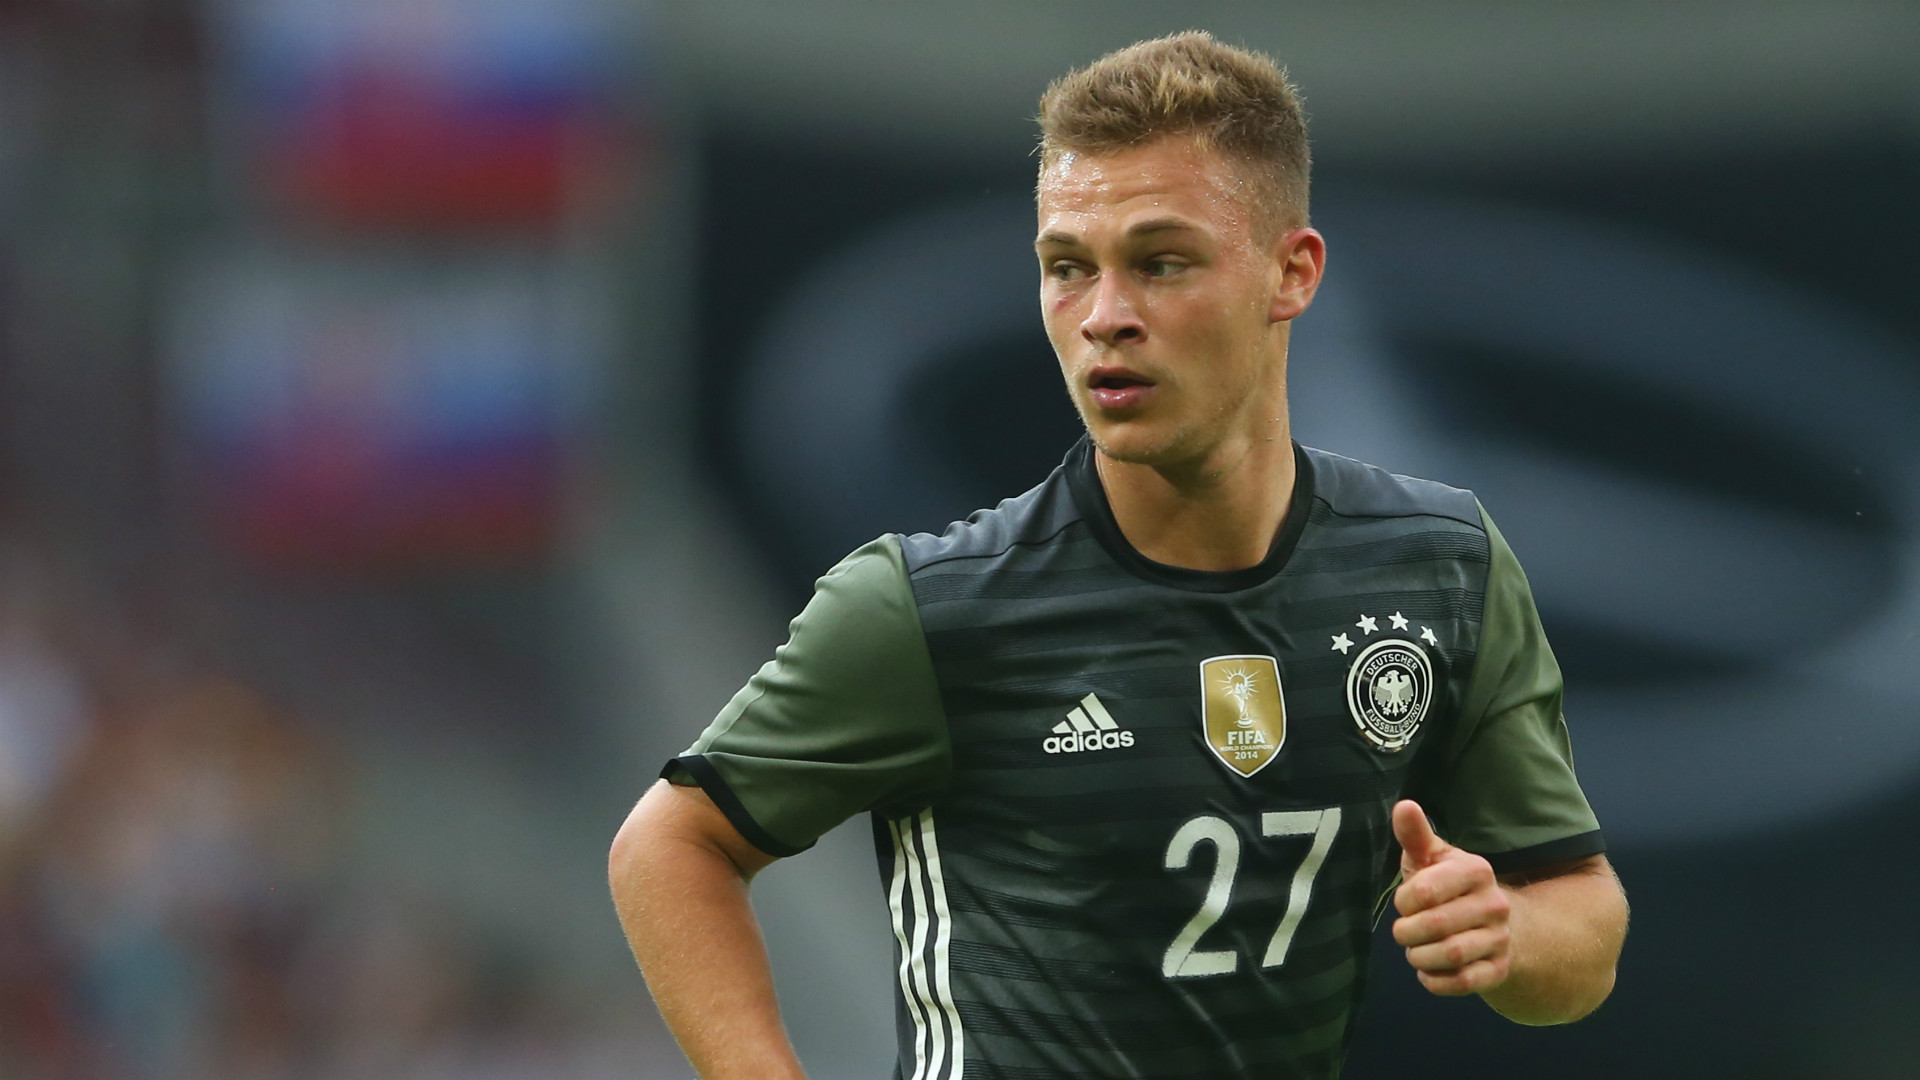 kimmich nationalmannschaft